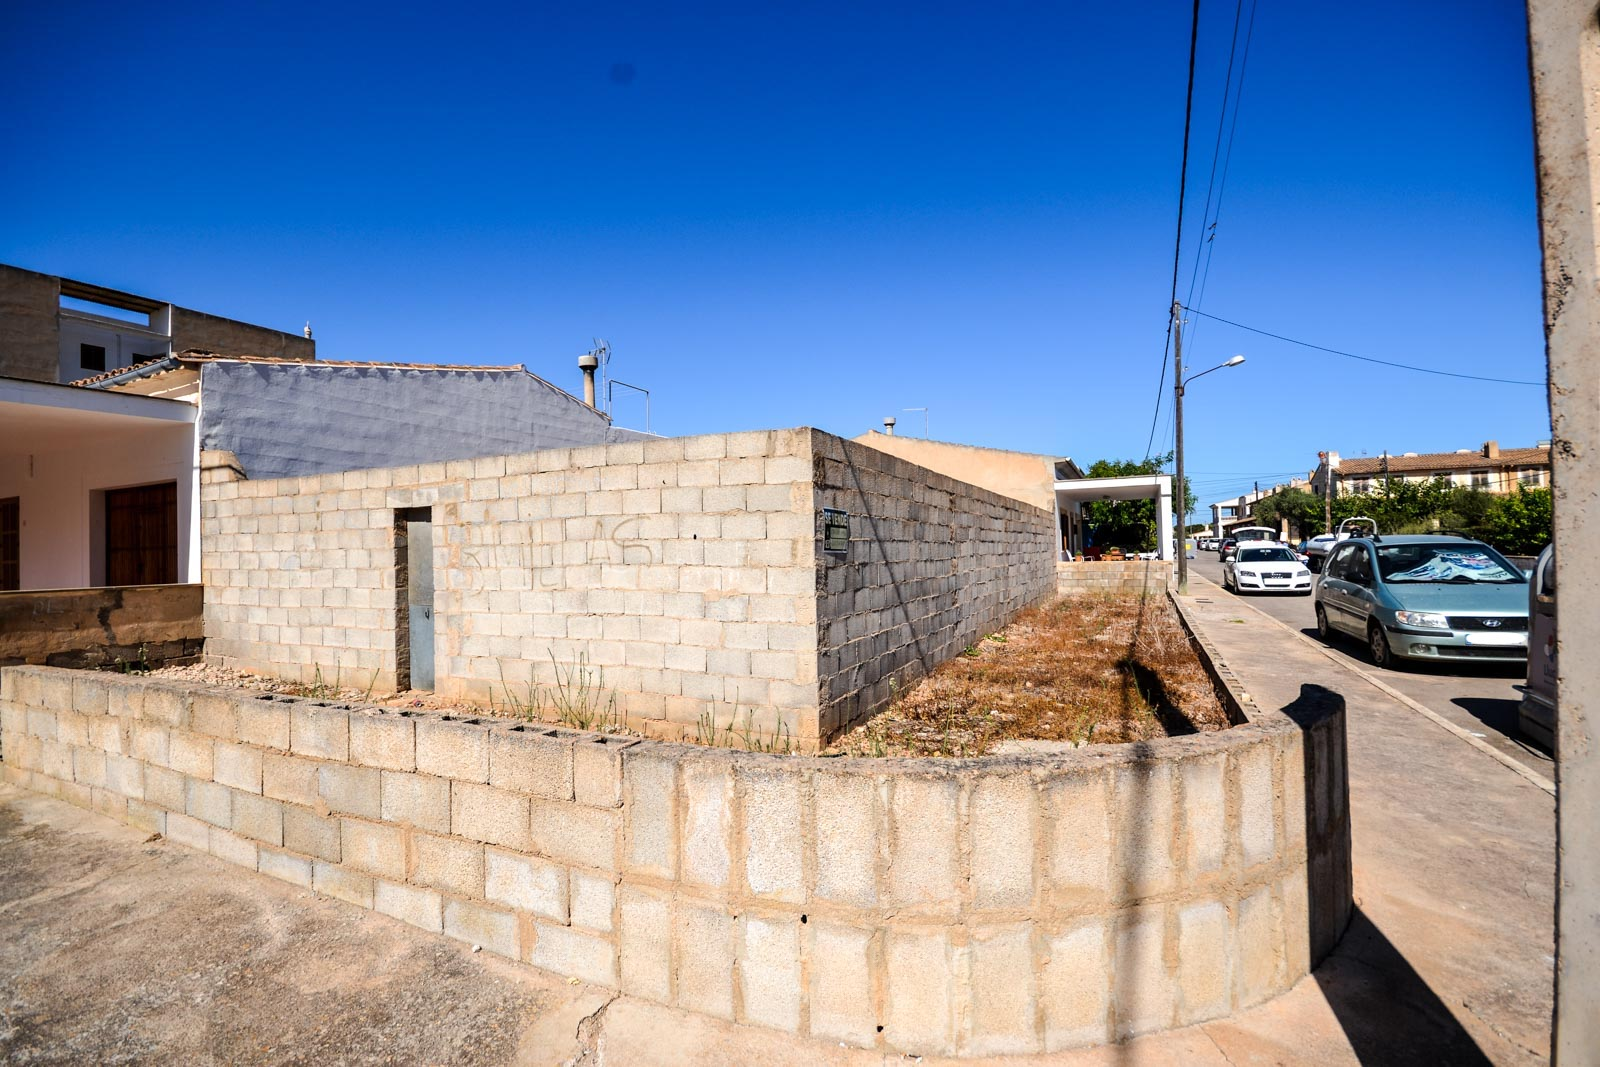 Building plot 200 meters from the sea in S'Estanyol